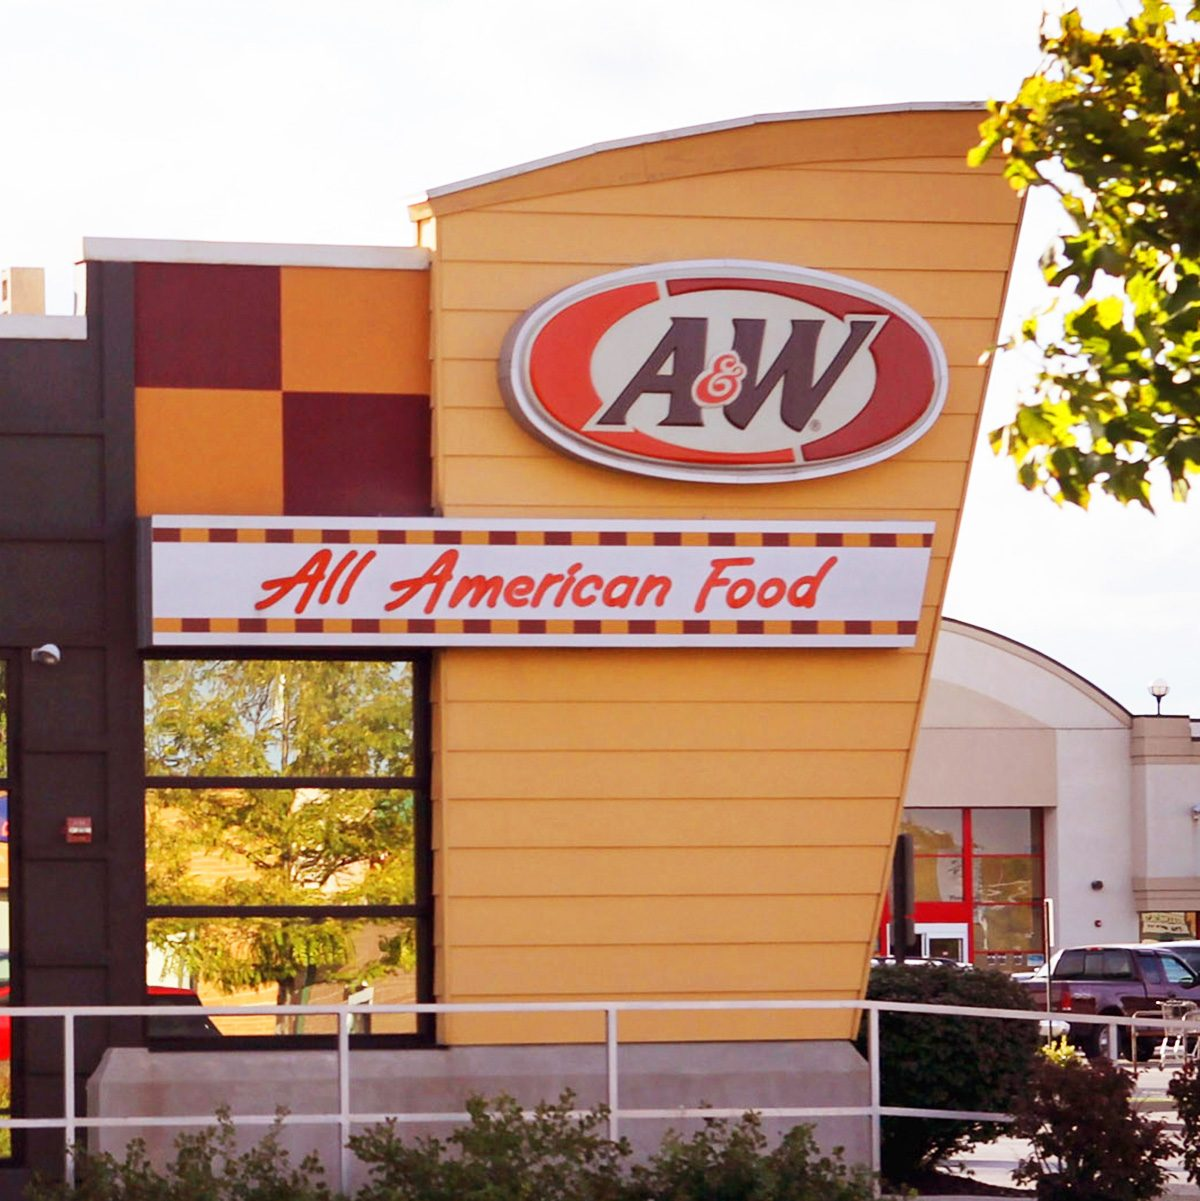 OAK LAWN, IL - SEPTEMBER 22: Yum Brands restaurants, Long John Silver's and A&W share a building on September 22, 2011 in Oak Lawn, Illinois. Yum Brands Inc., which also owns KFC, Pizza Hut and Taco Bell, has agreed to sell its Long John Silver's restaurants to LJS Partners LLC and the A&W All-American Food chain to A Great American Brand LLC. (Photo by Scott Olson/Getty Images)